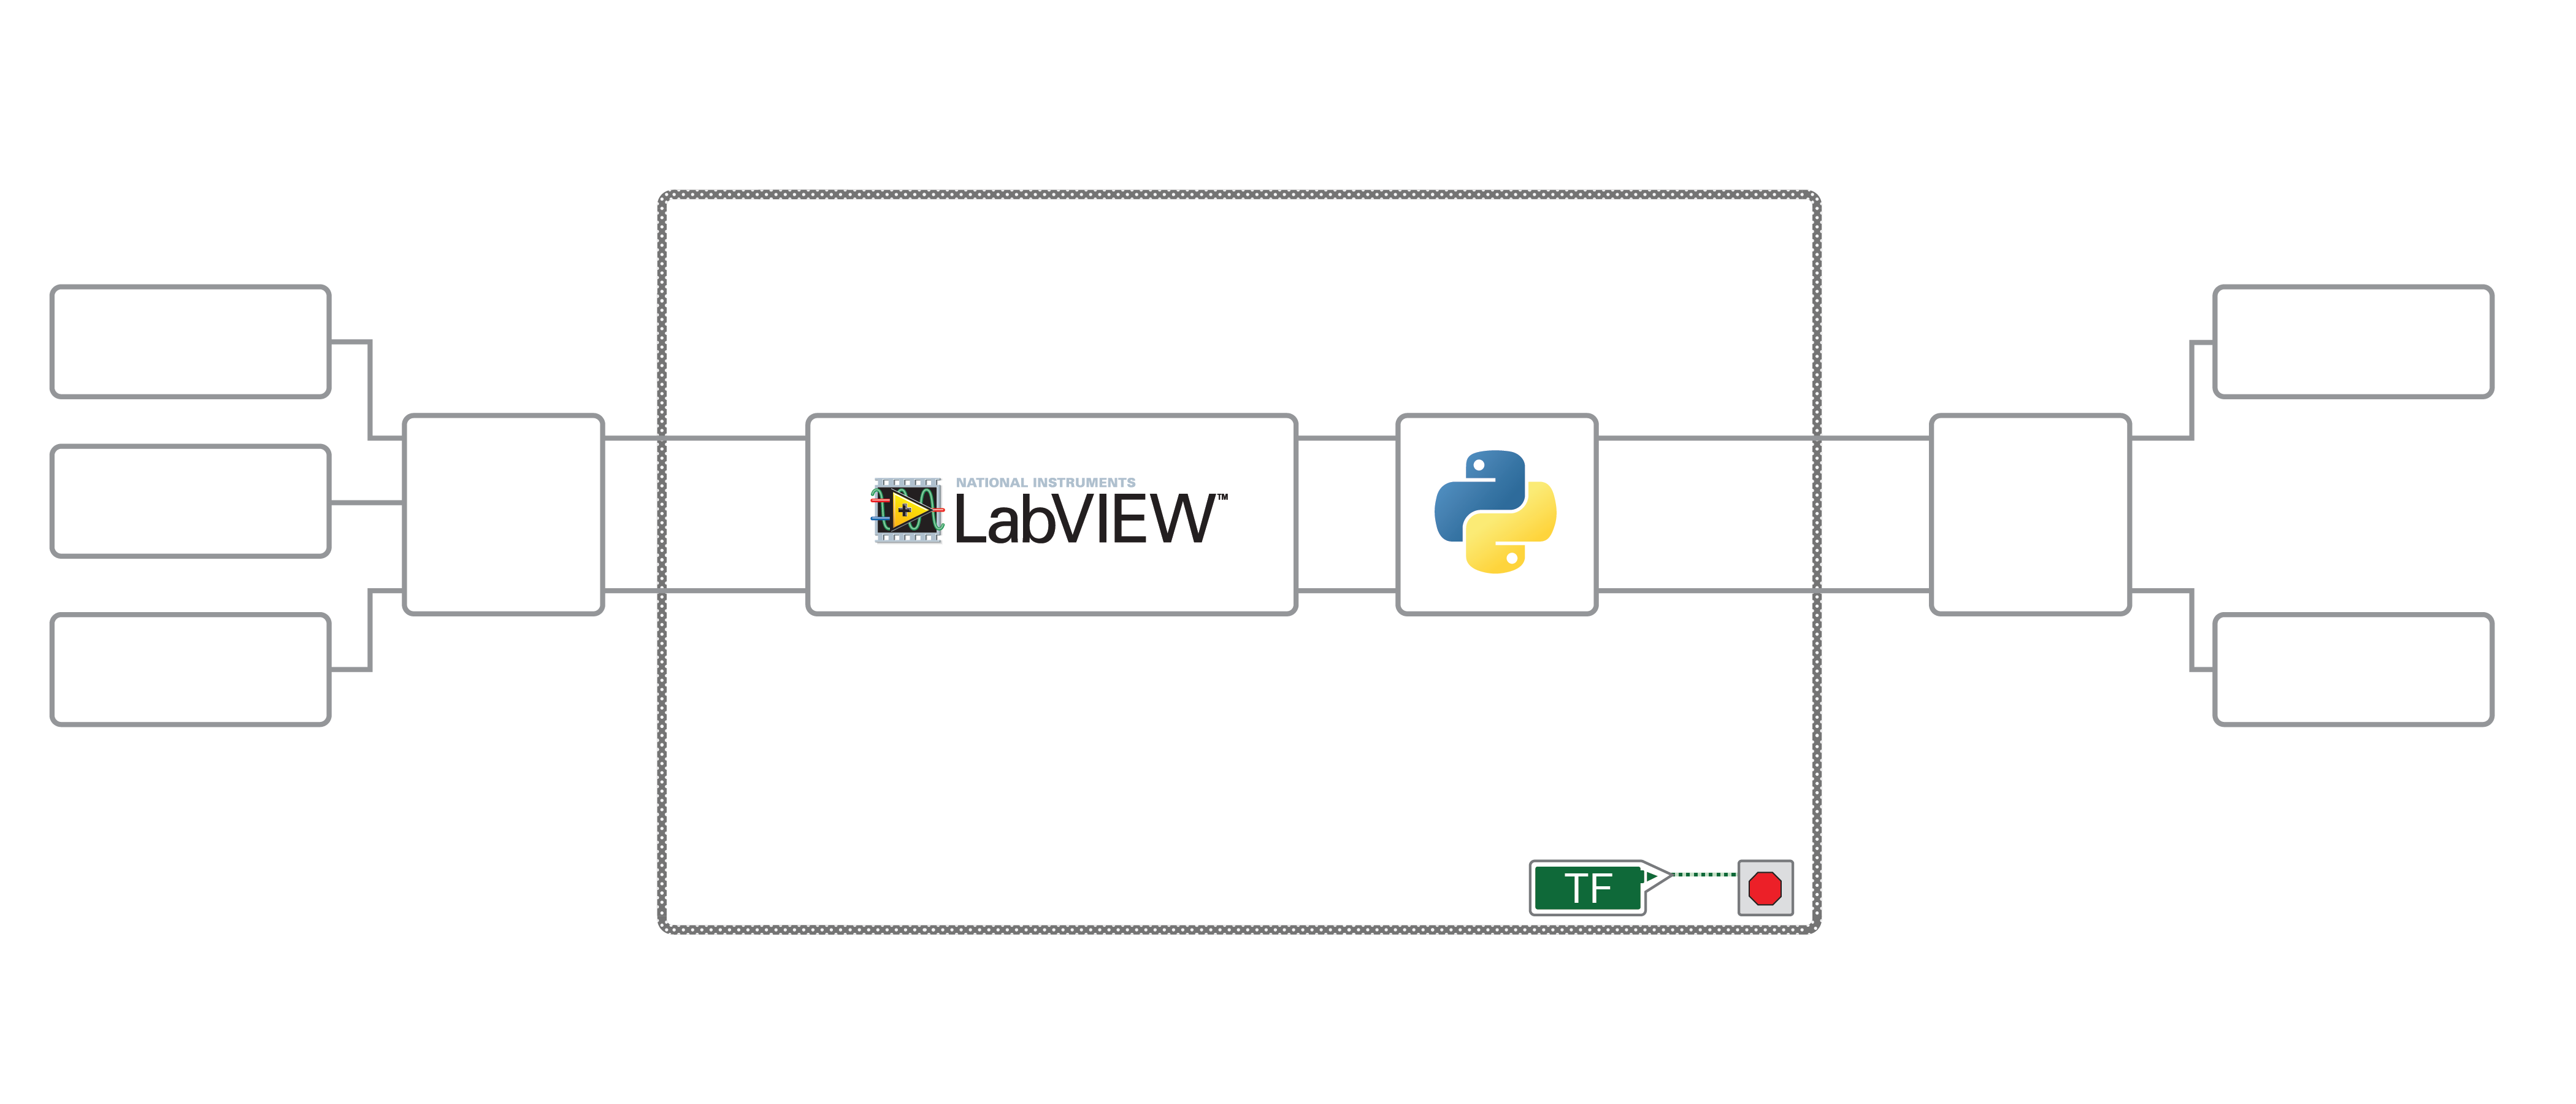 28612_Python_LabVIEW_Diagram.png